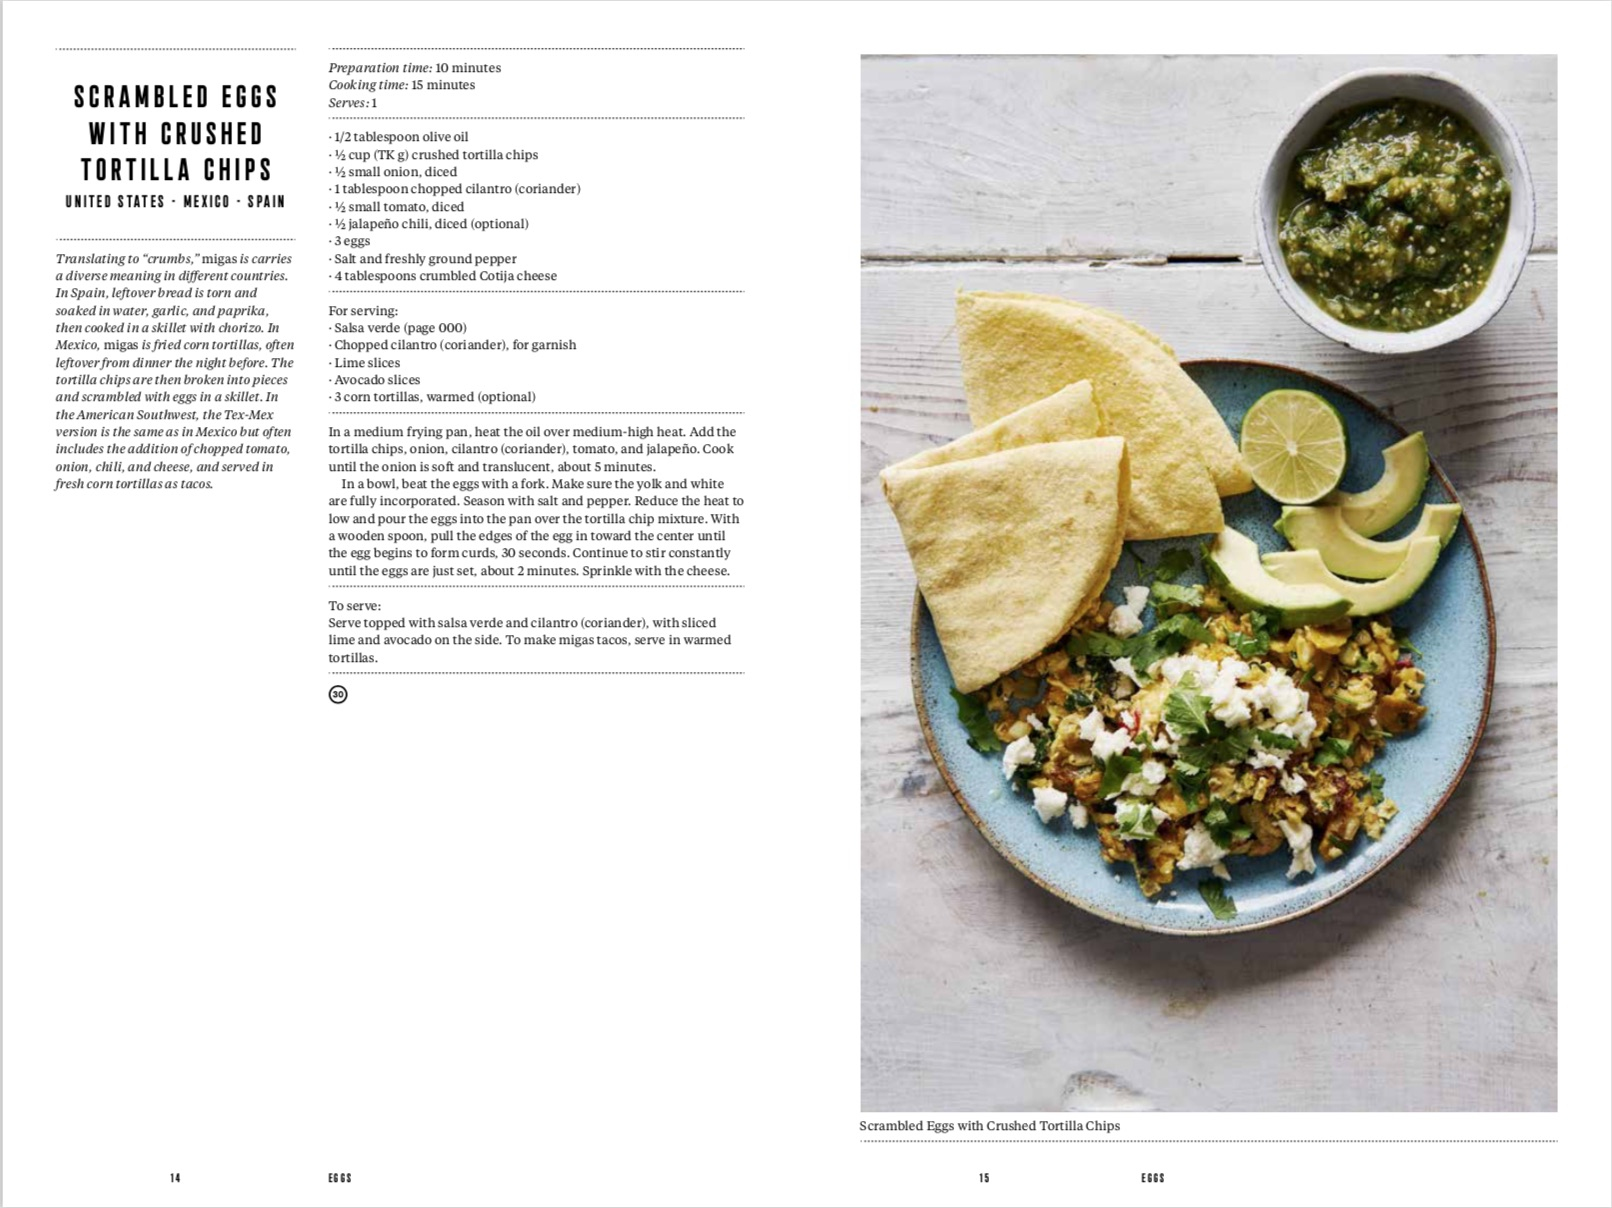 By Emily Elyse Miller from Breakfast: The Cookbook copyright Phaidon 2019